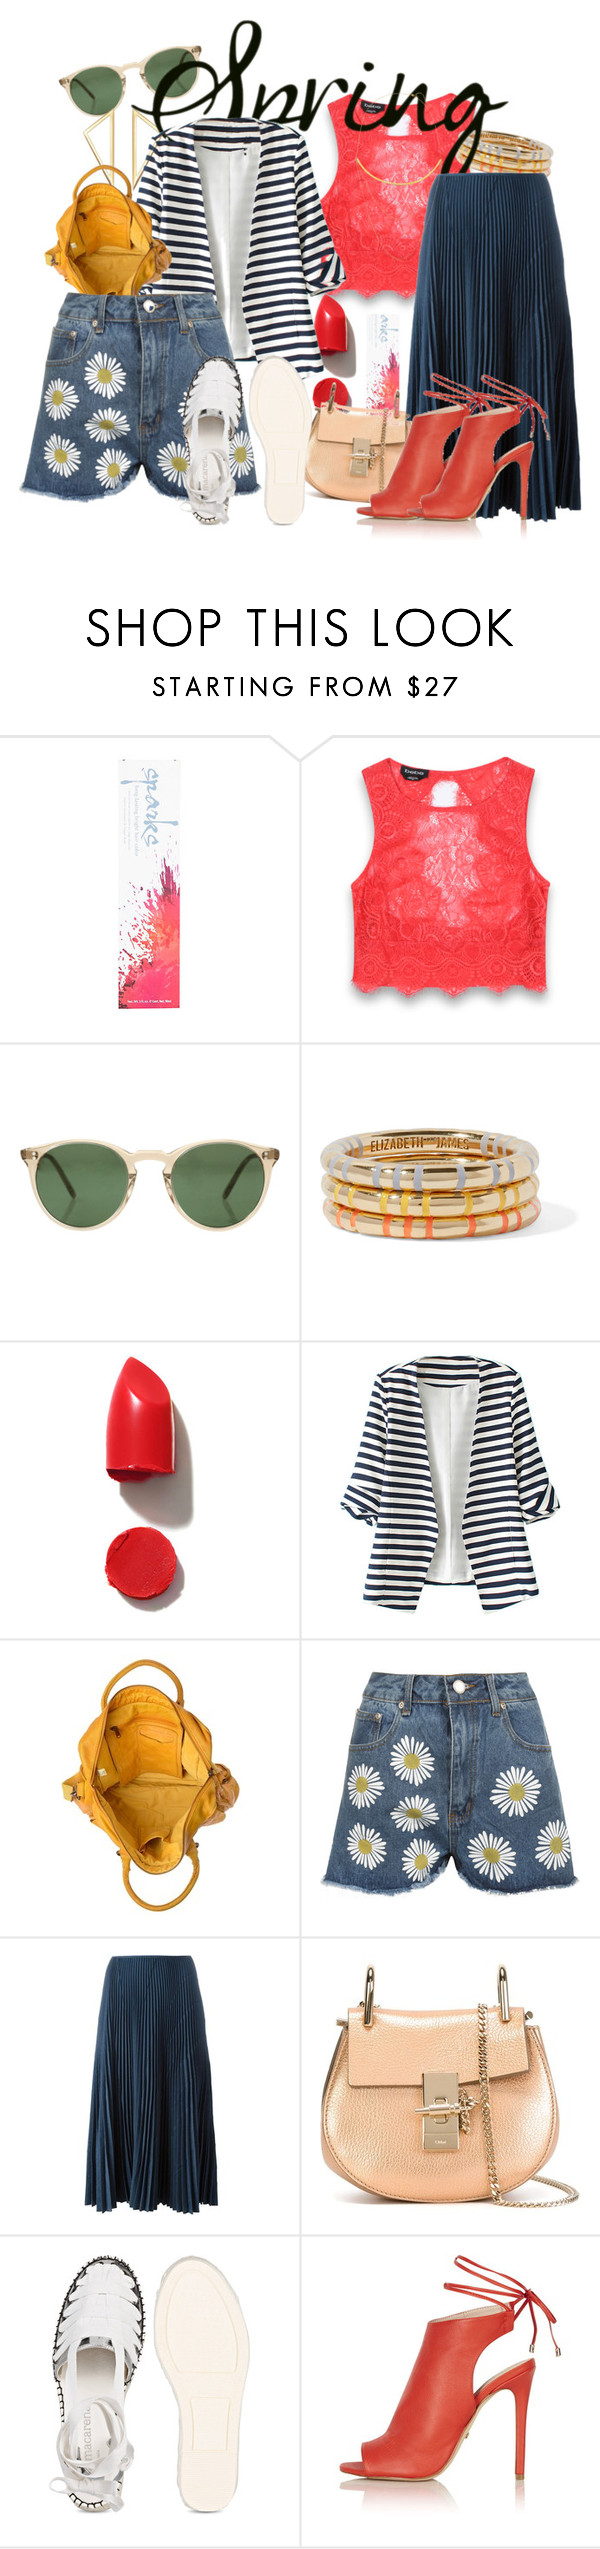 """wake up spring!"" by spiceandsugar ❤ liked on Polyvore featuring Bebe, Oliver Peoples, Elizabeth and James, NARS Cosmetics, WithChic, WearAll, Cédric Charlier, Chloé, Topshop and Jennifer Zeuner"